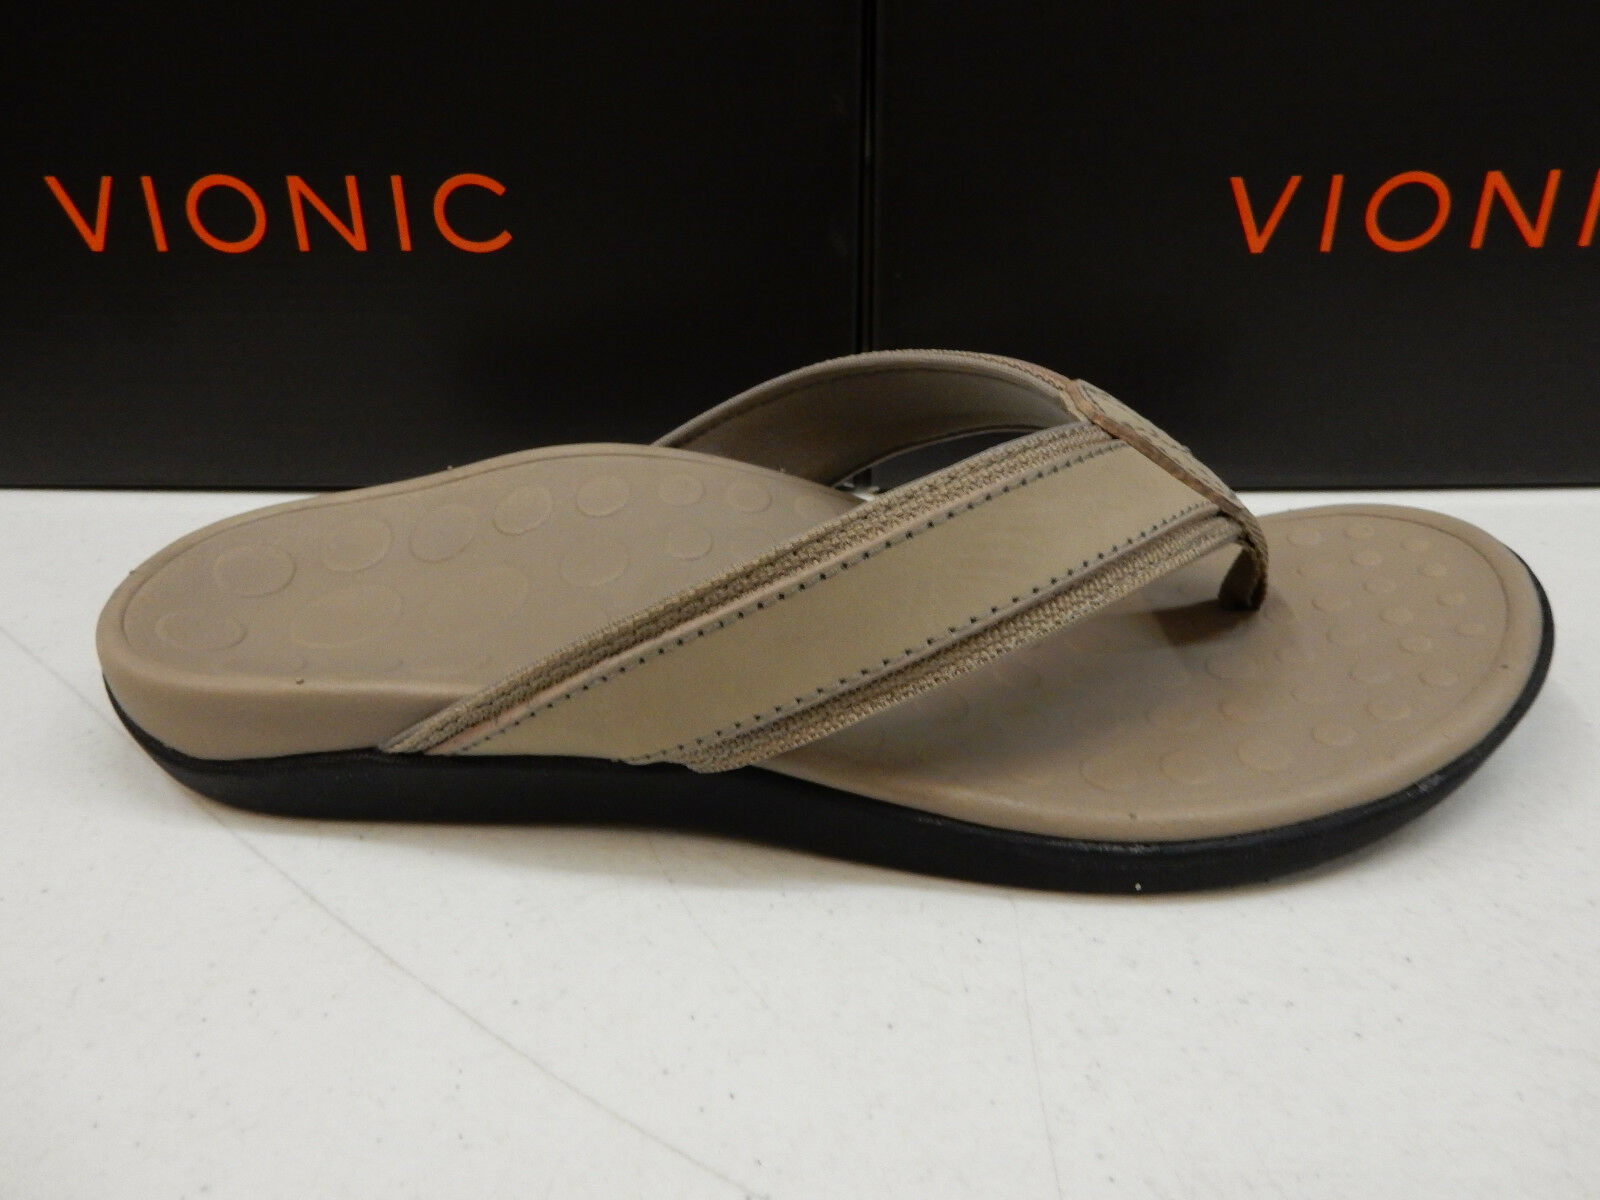 VIONIC Uomo SANDALS TIDE TAUPE SIZE 10